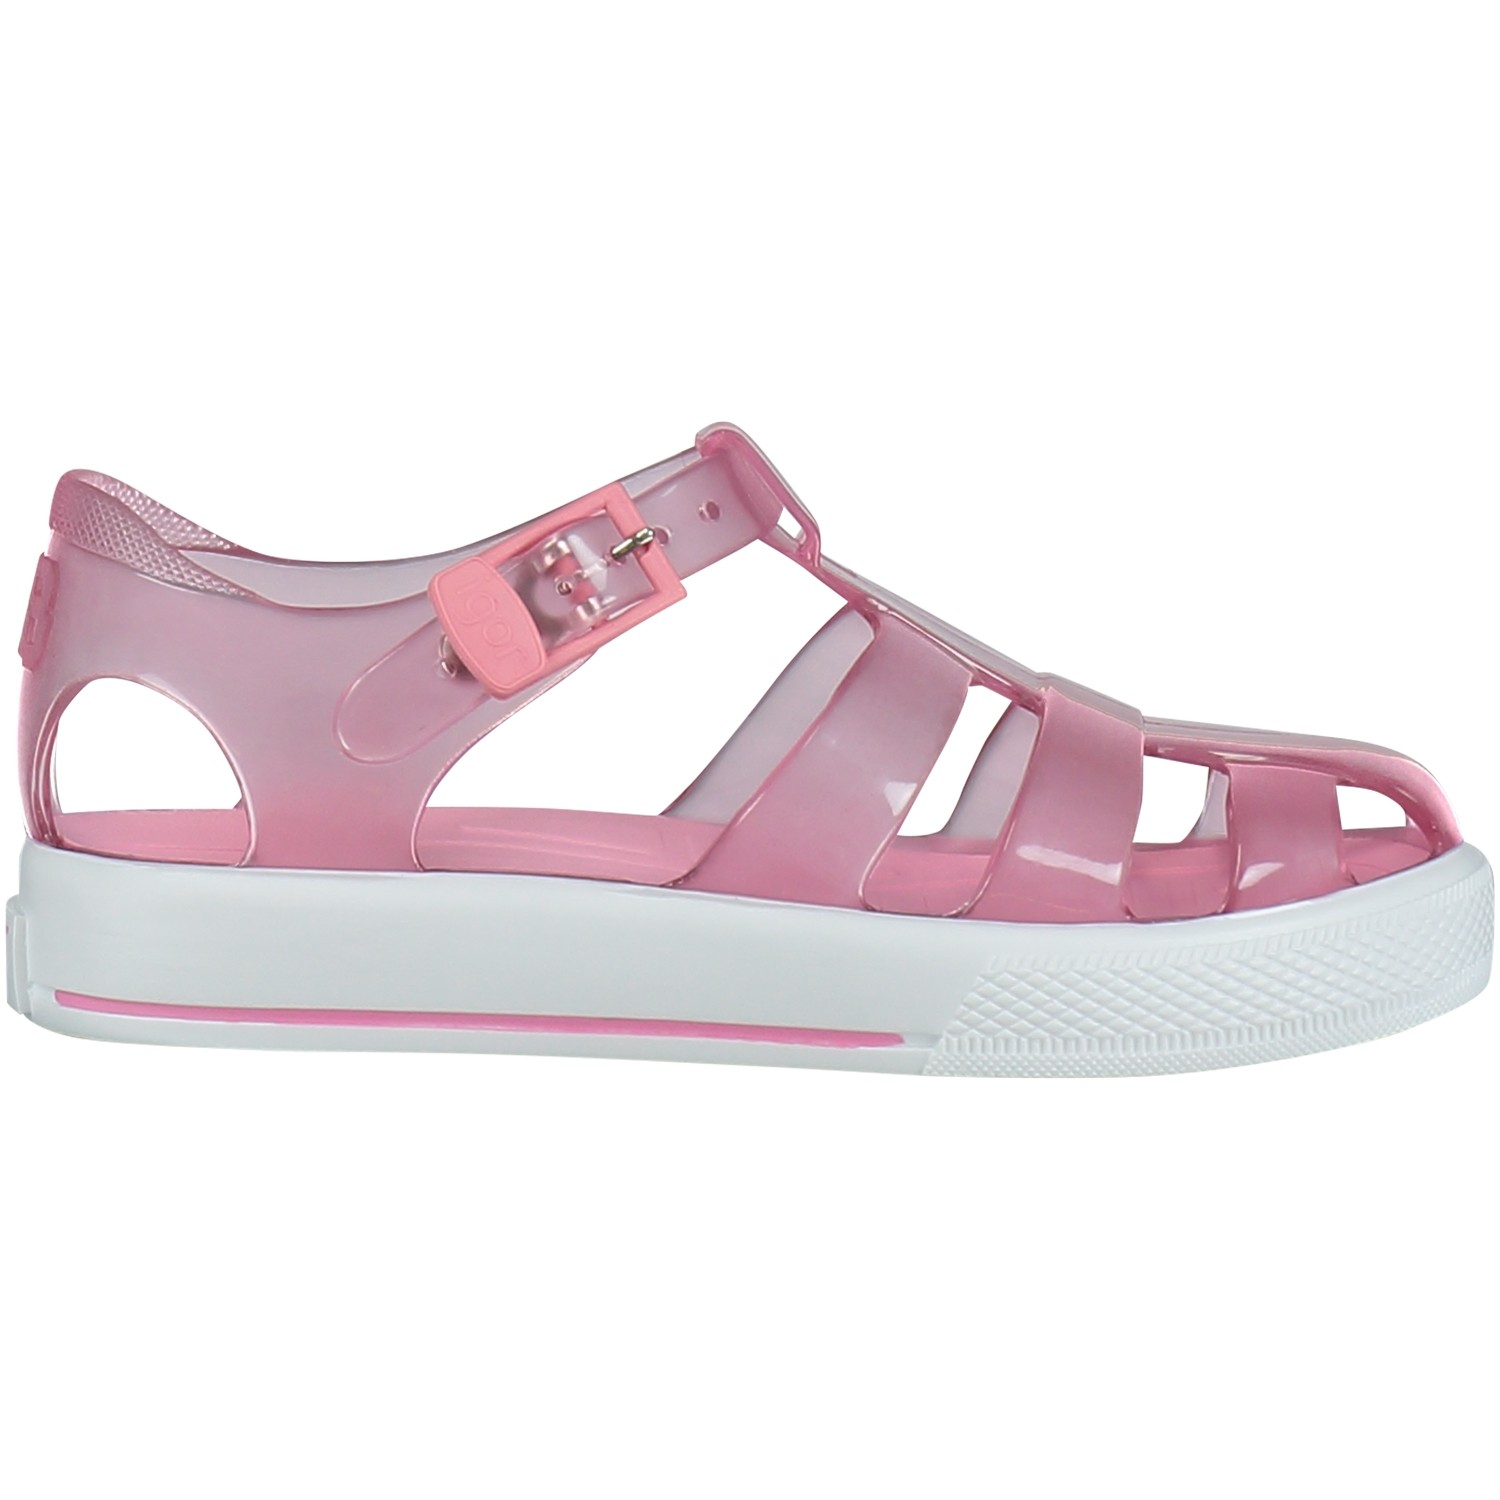 Picture of Igor S10107 kids sandal pink